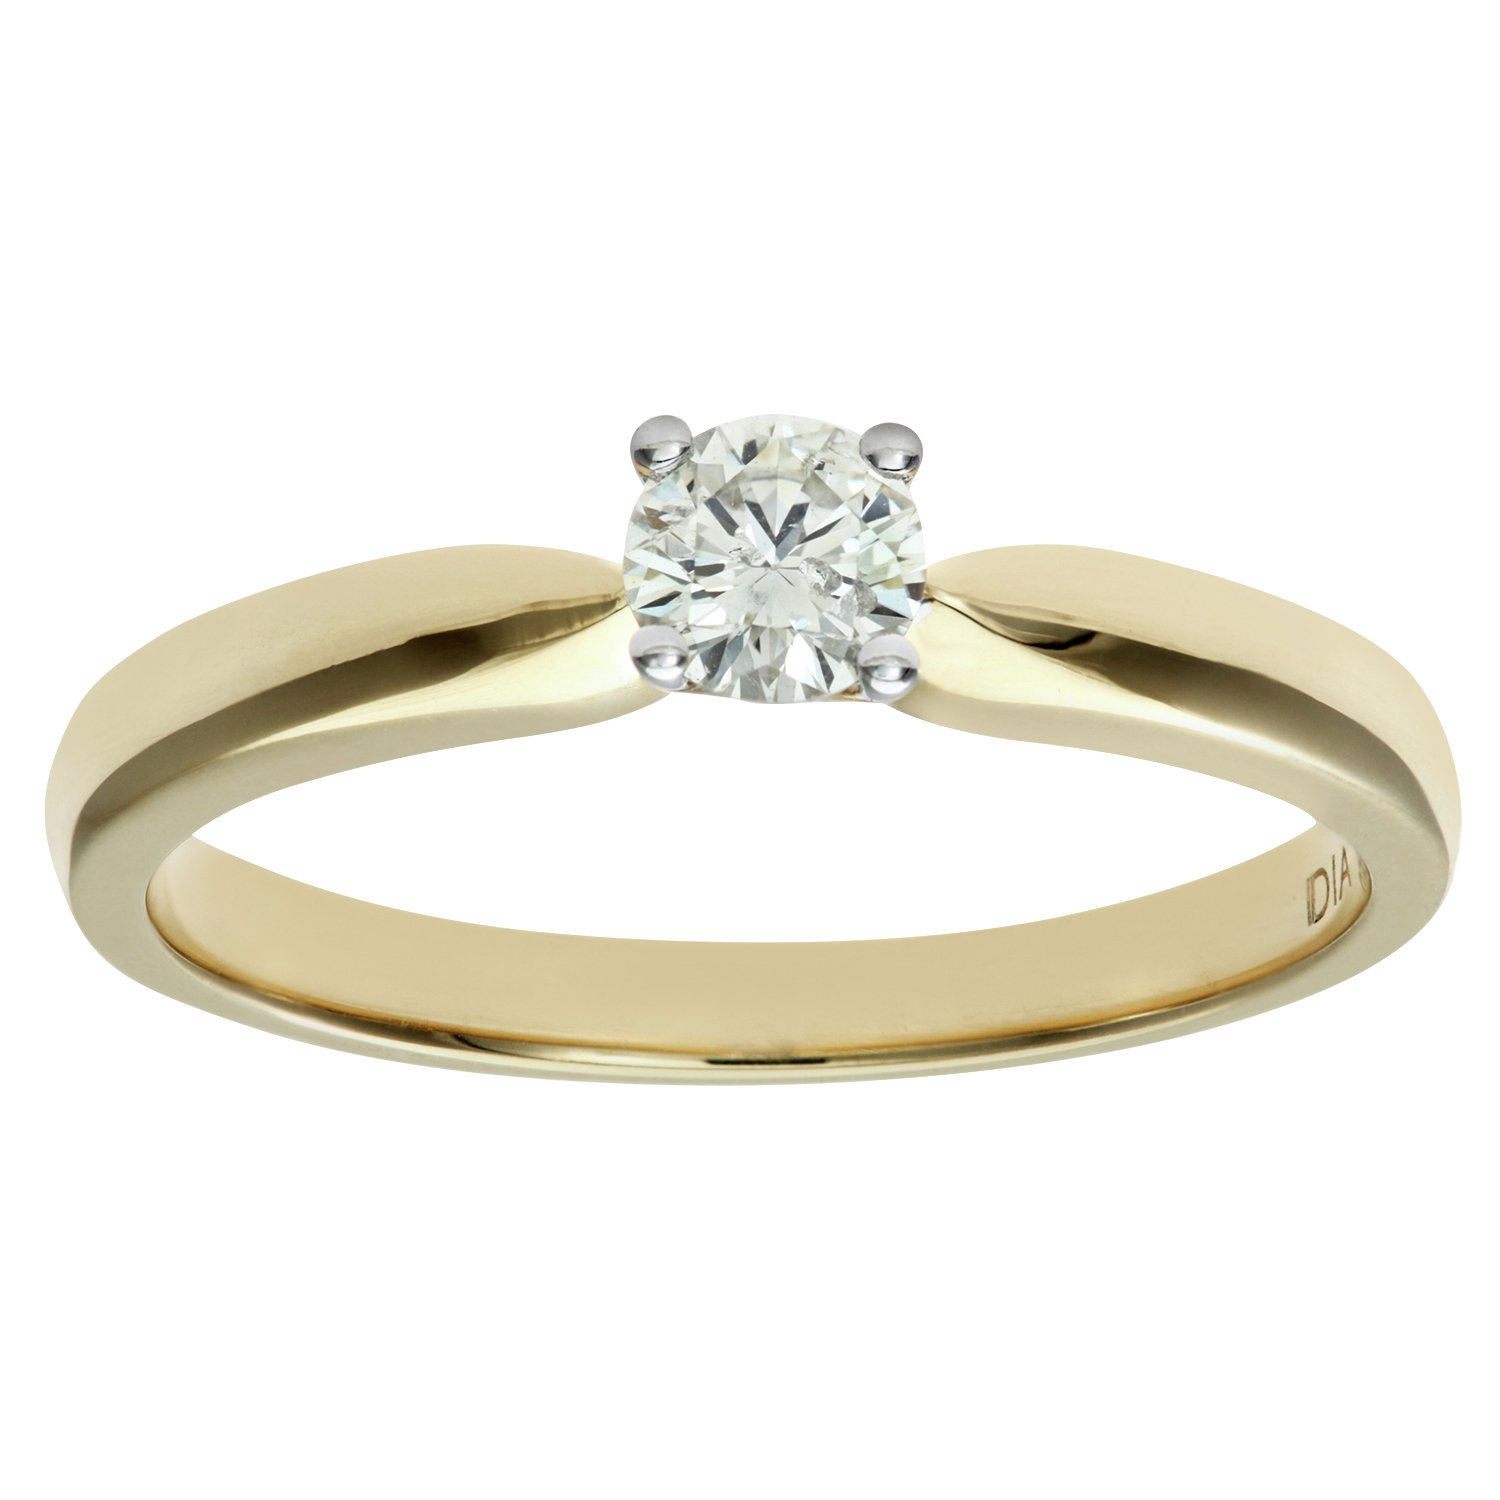 Made For You - 18 Carat 025 Carat Solitaire Ring - Size V